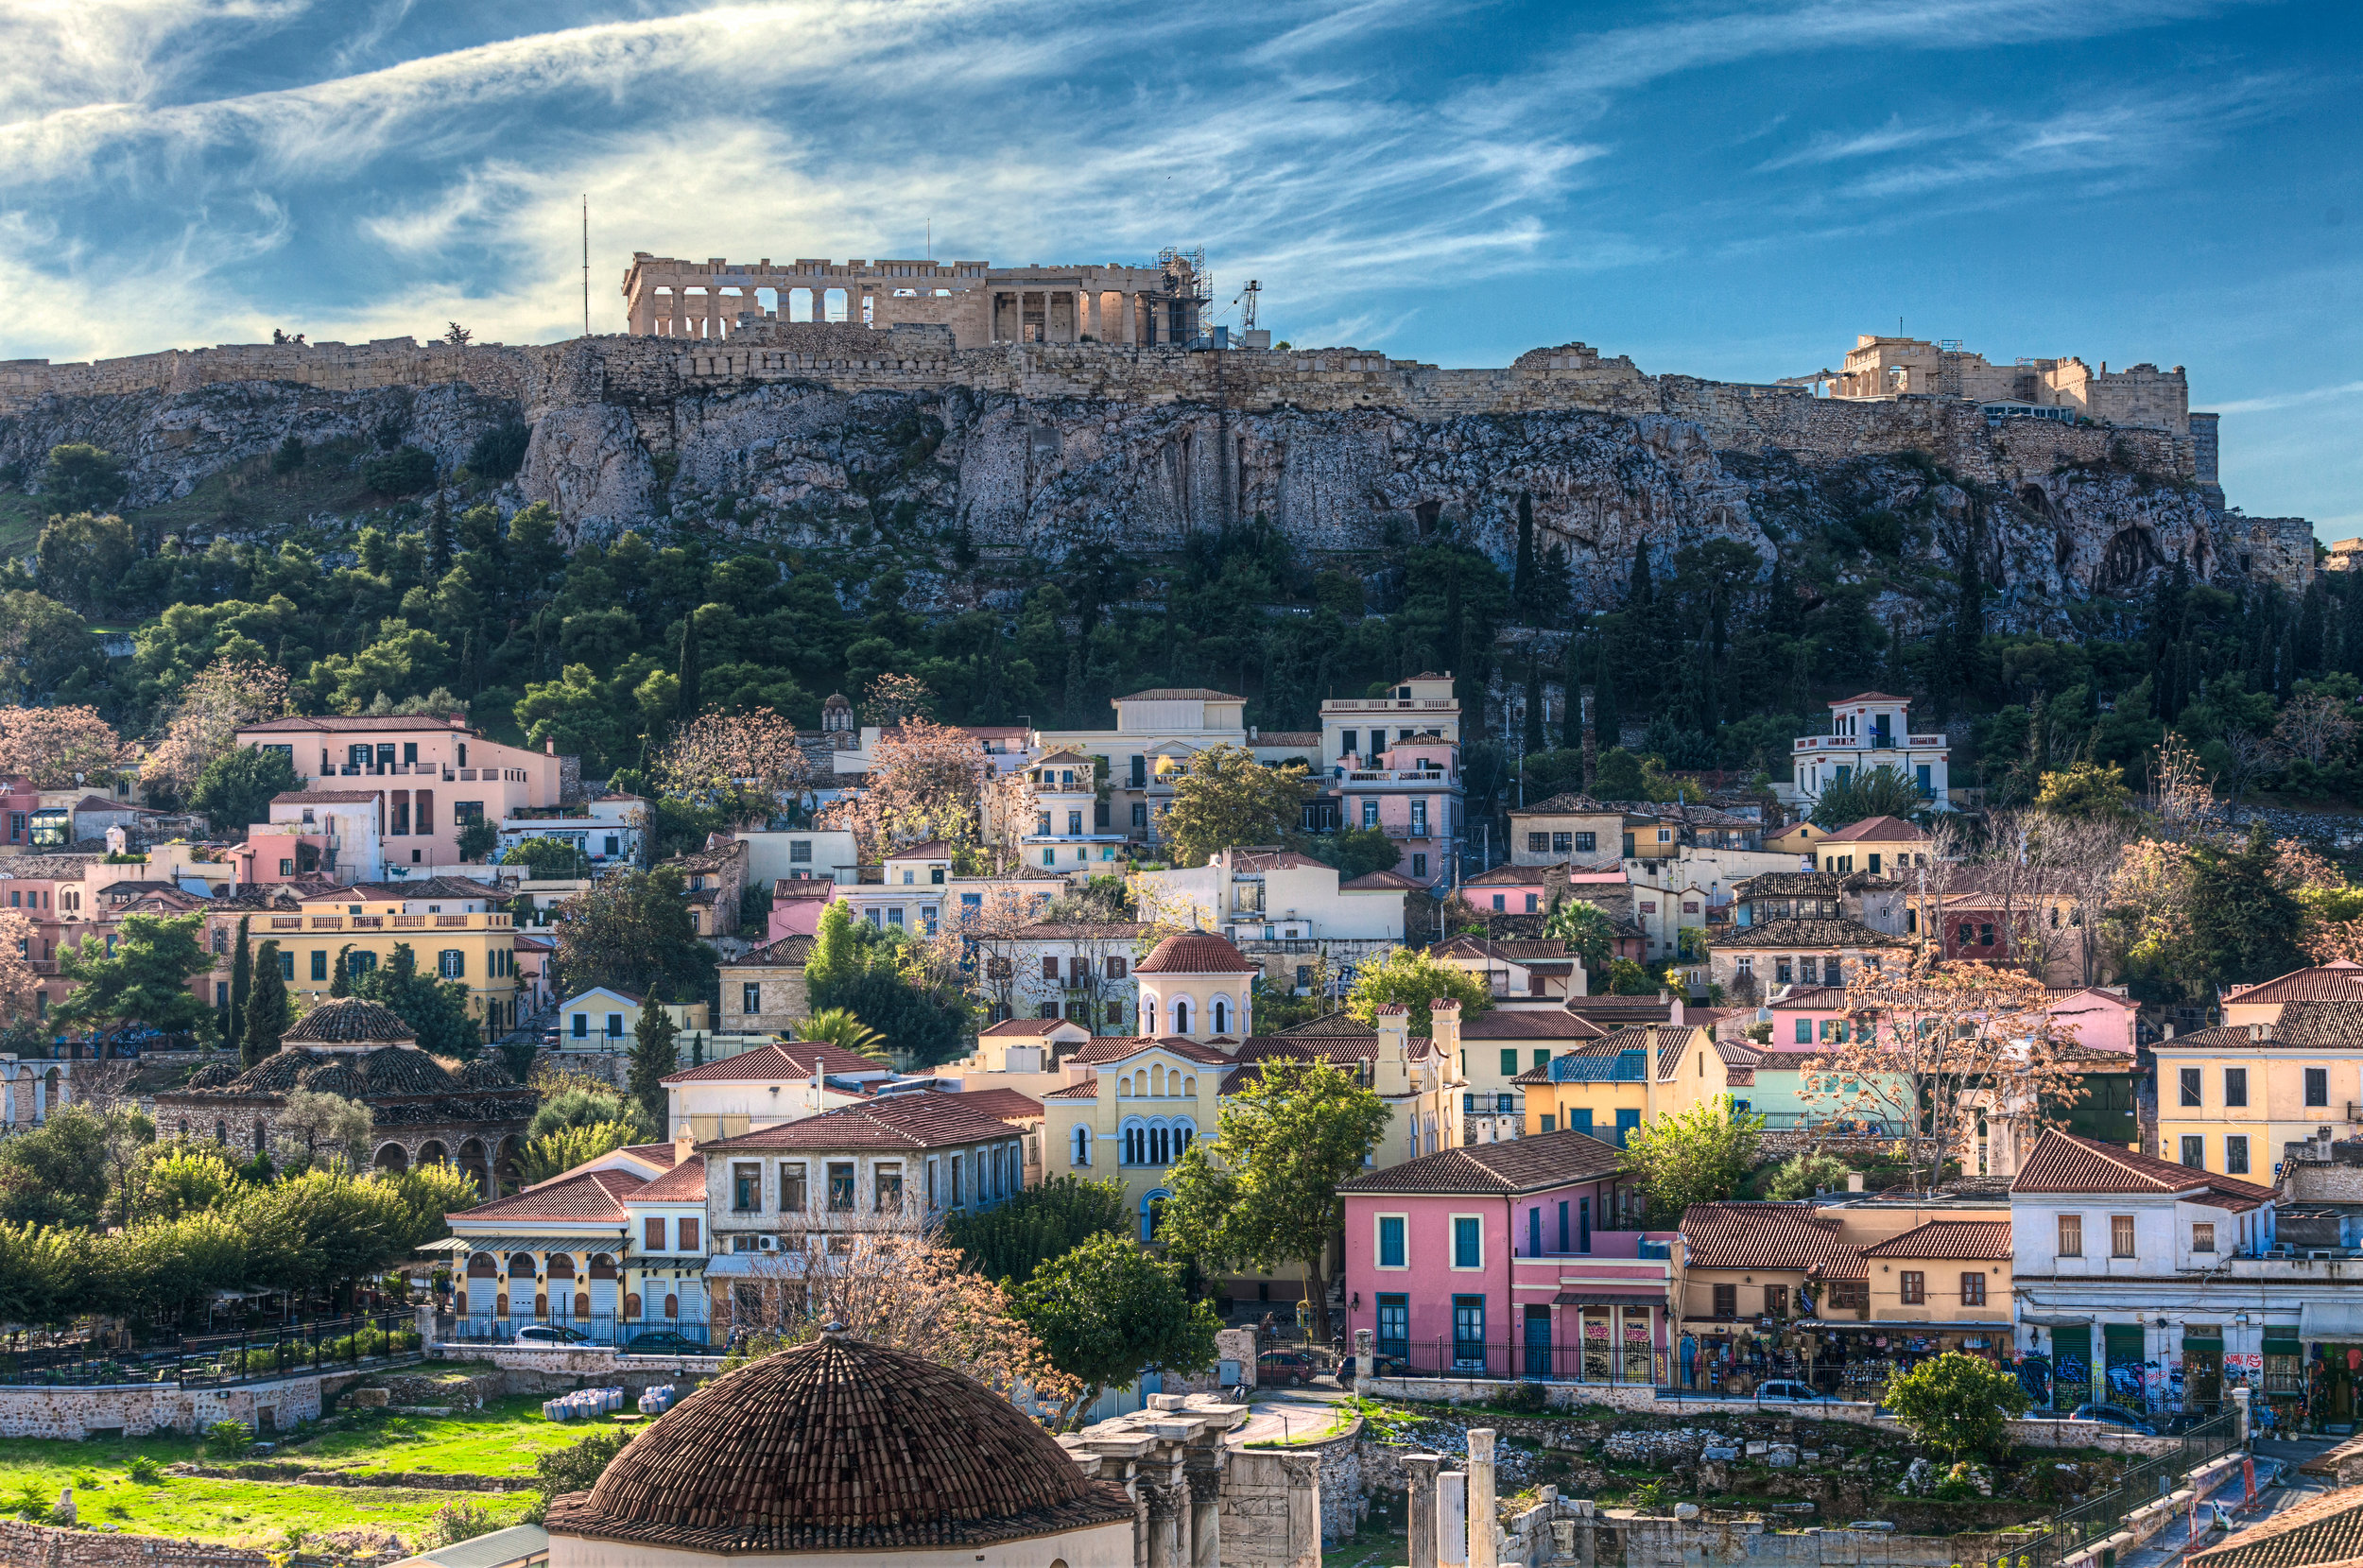 Acropolis in Athens, Greece